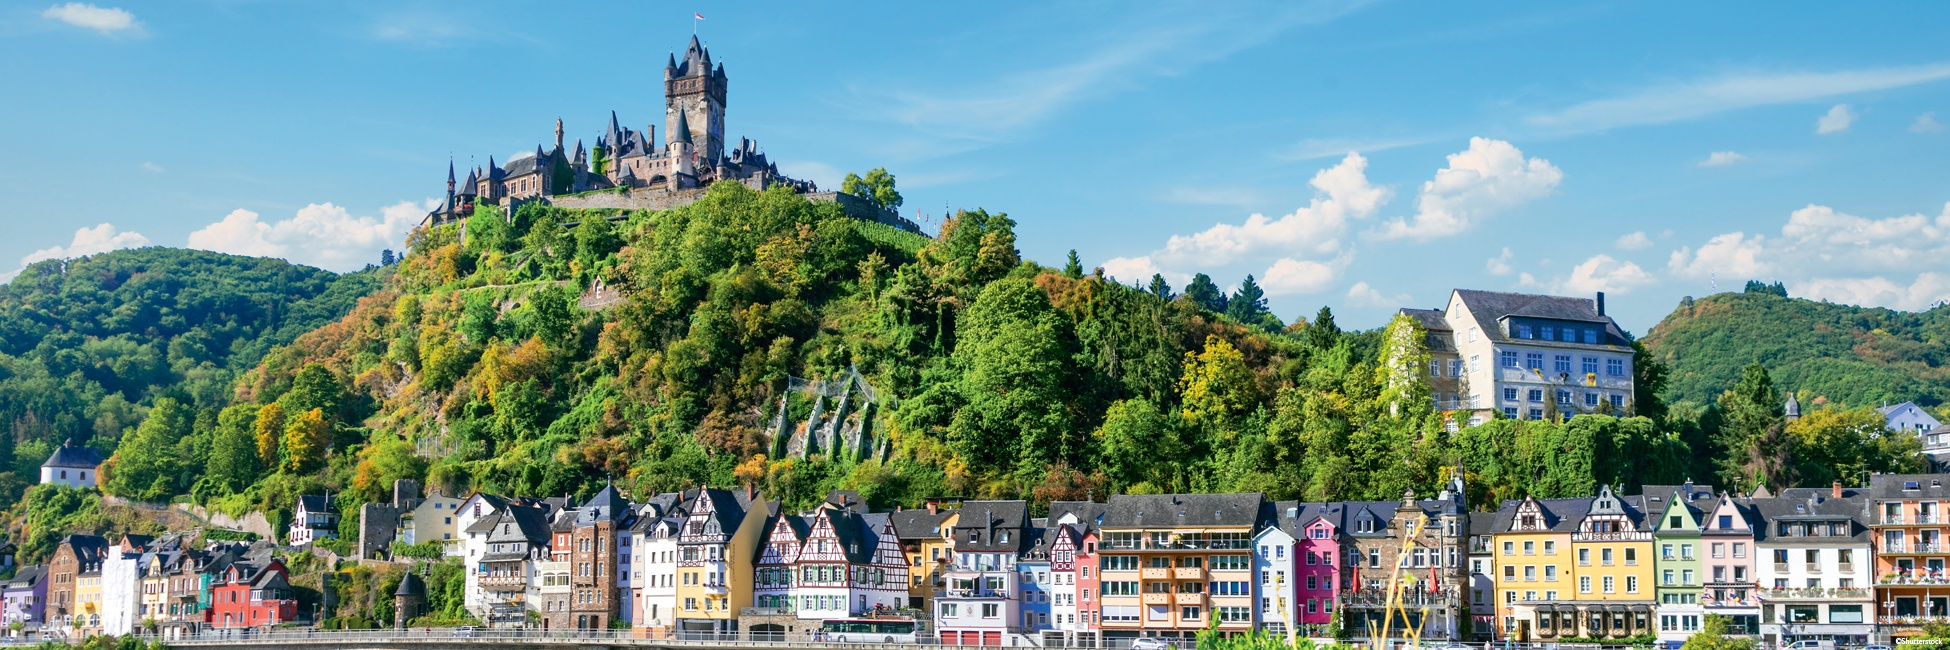 Romantic Rhine River Cruises 2019 And 2020 Depatures And Bookings Croisieurope Cruises